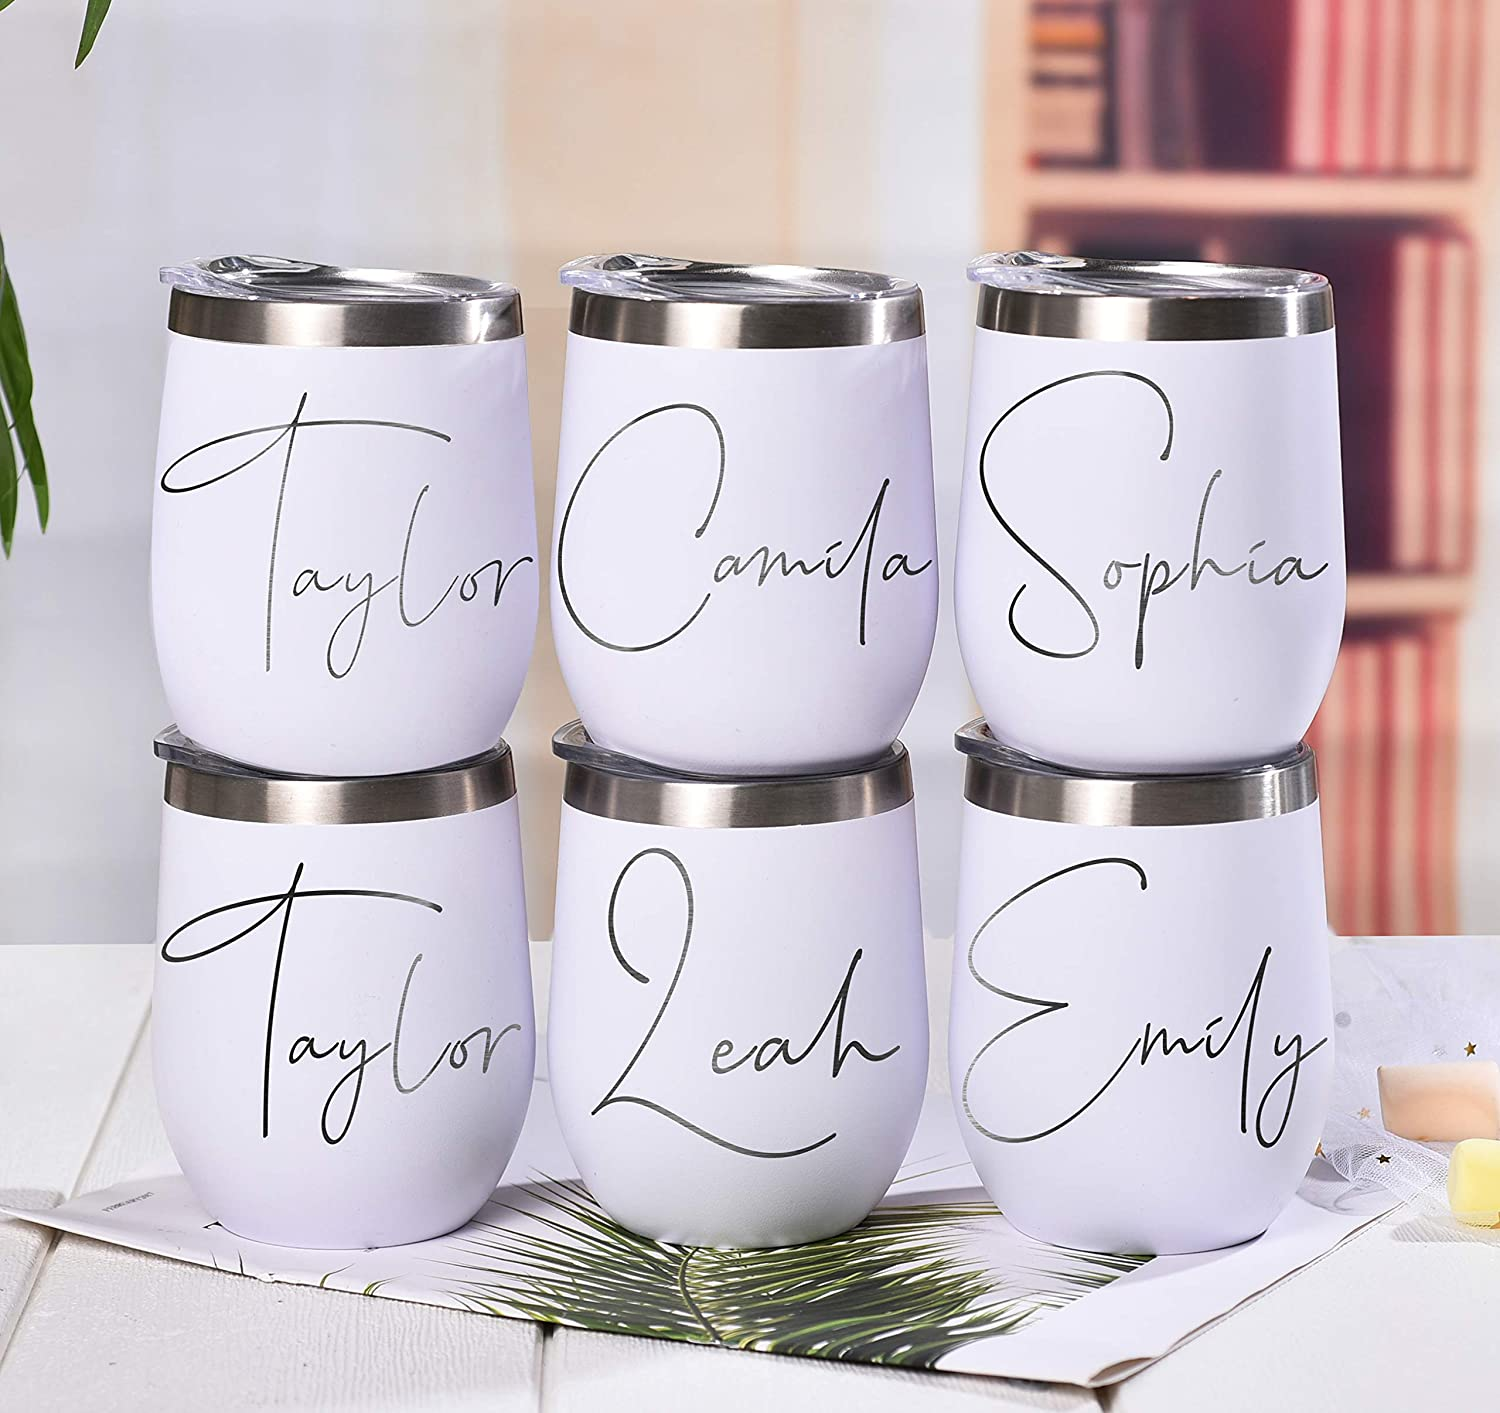 Personalized Tumbler,Wine Tumbler,Stemless Wine Cup,Wine Cup with Lid,Lid and Straw,Bridesmaid Gift,Gift Bachelorette,Bridal Wedding Gift,Double Wall Tumbler,Wedding Tumbler,Graduation Gifts